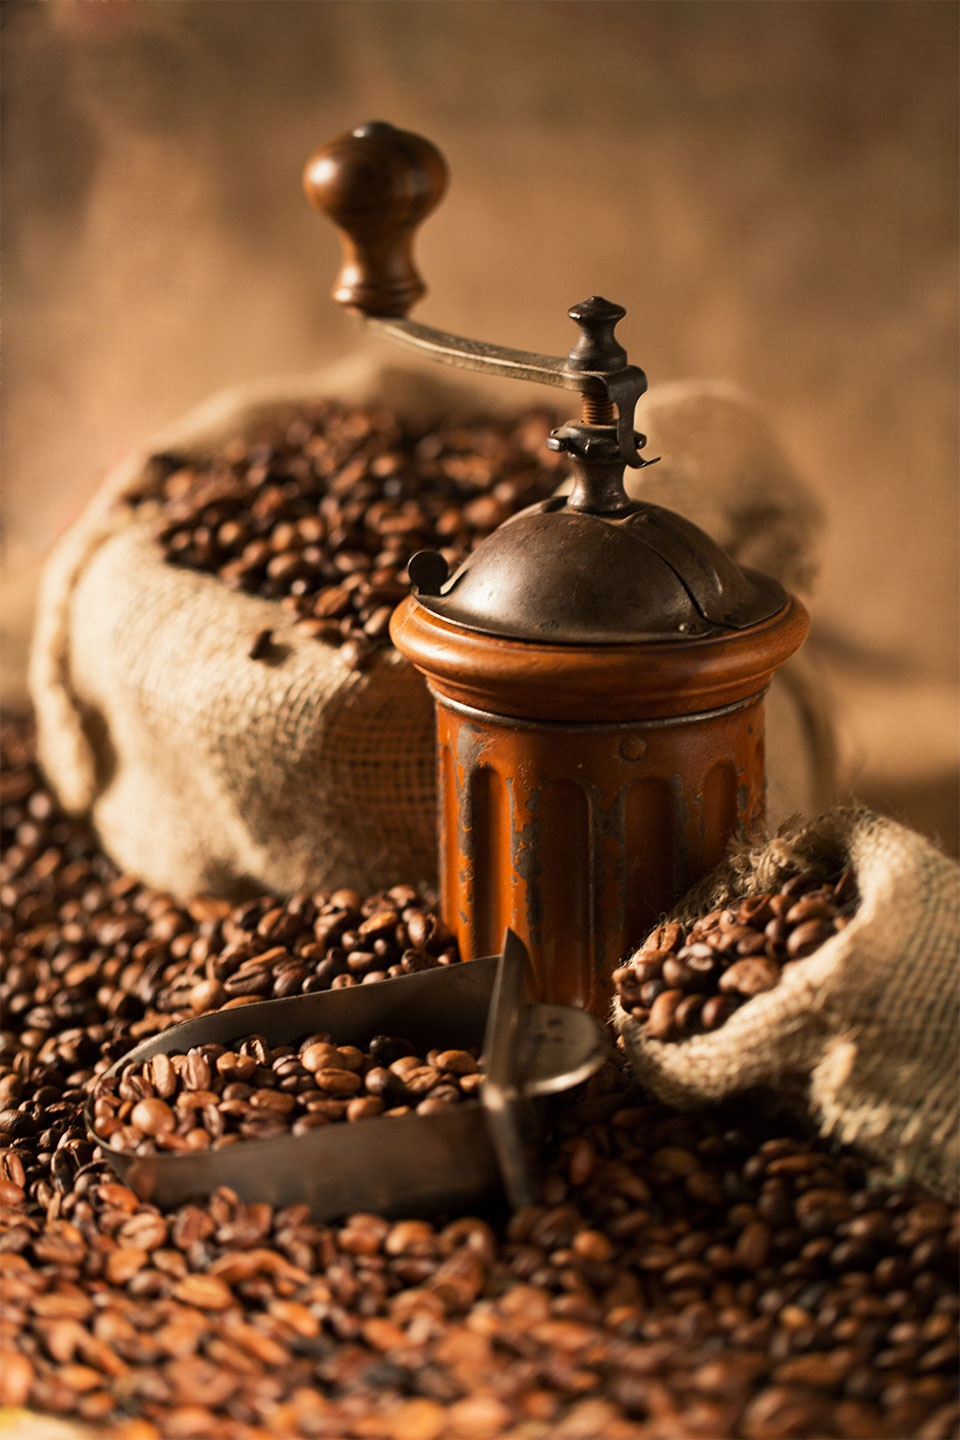 Coffe beans with old grinder by Marco Soscia